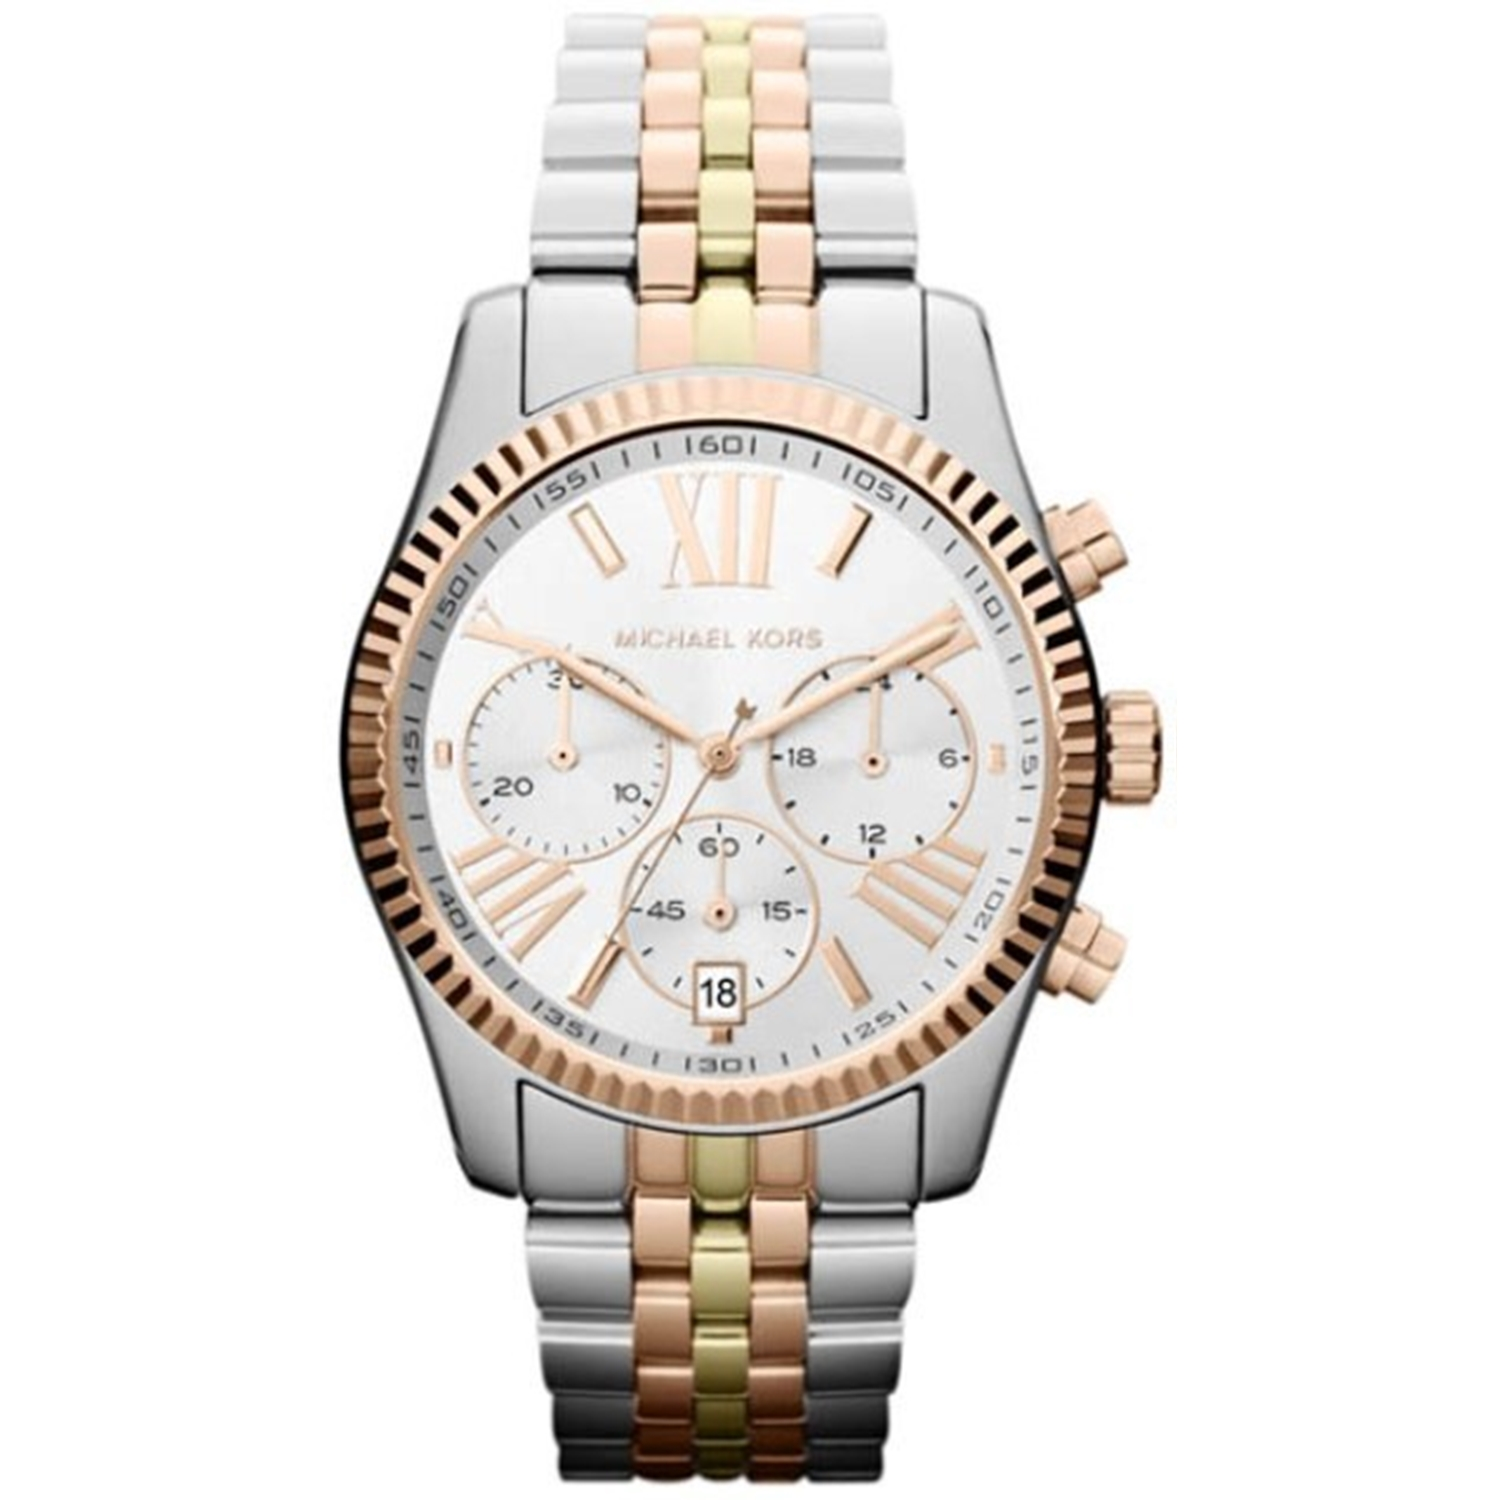 Michael Kors Women's Lexington MK5735 White Stainless-Steel Quartz Fashion Watch